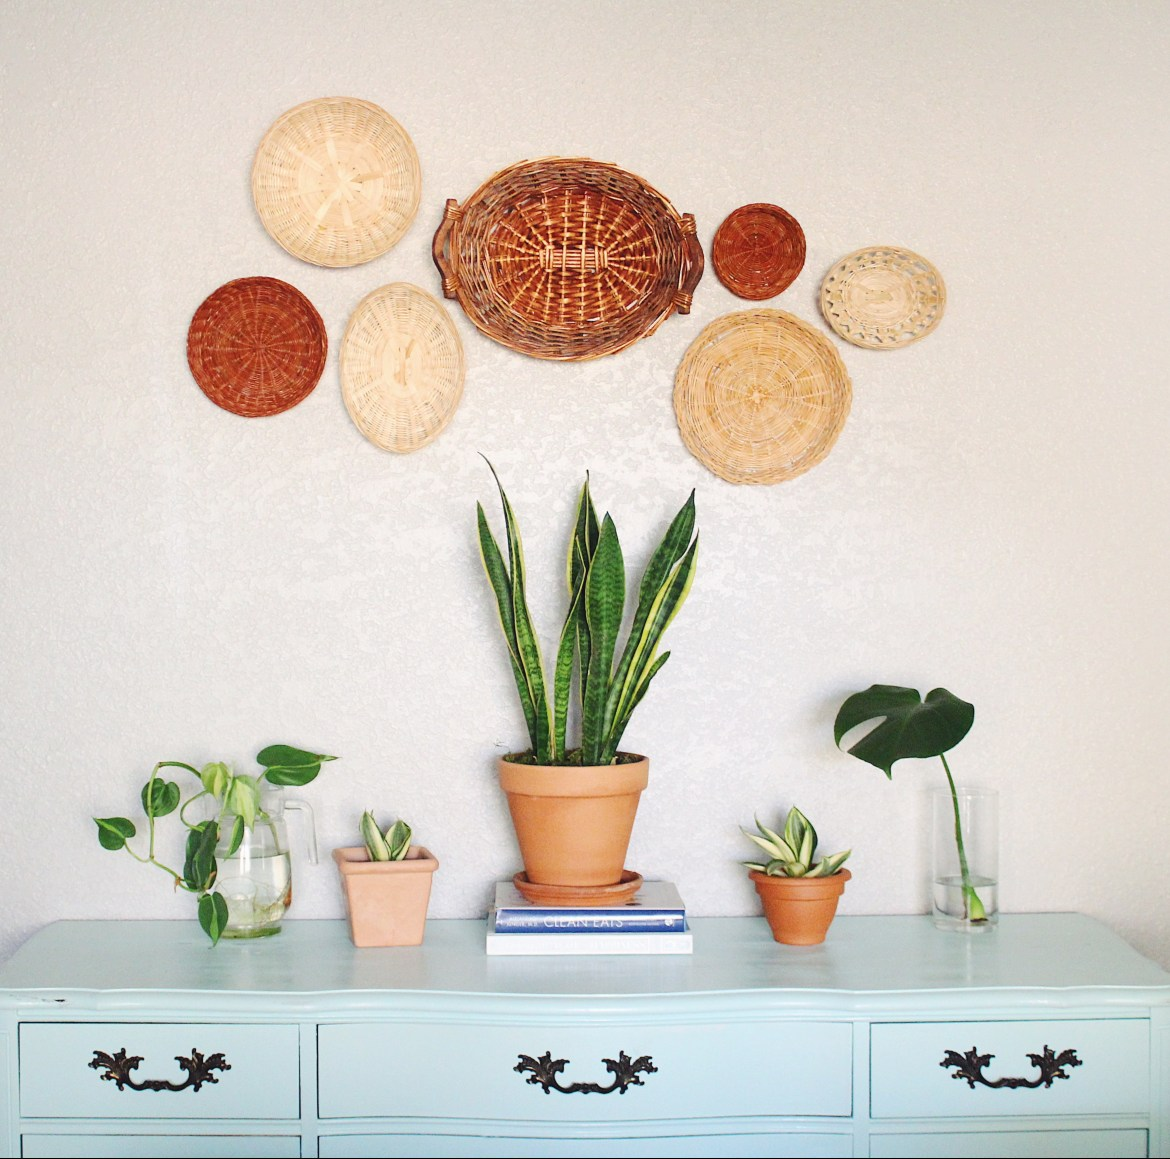 A step by step guide for creating your own bohemian basket wall décor